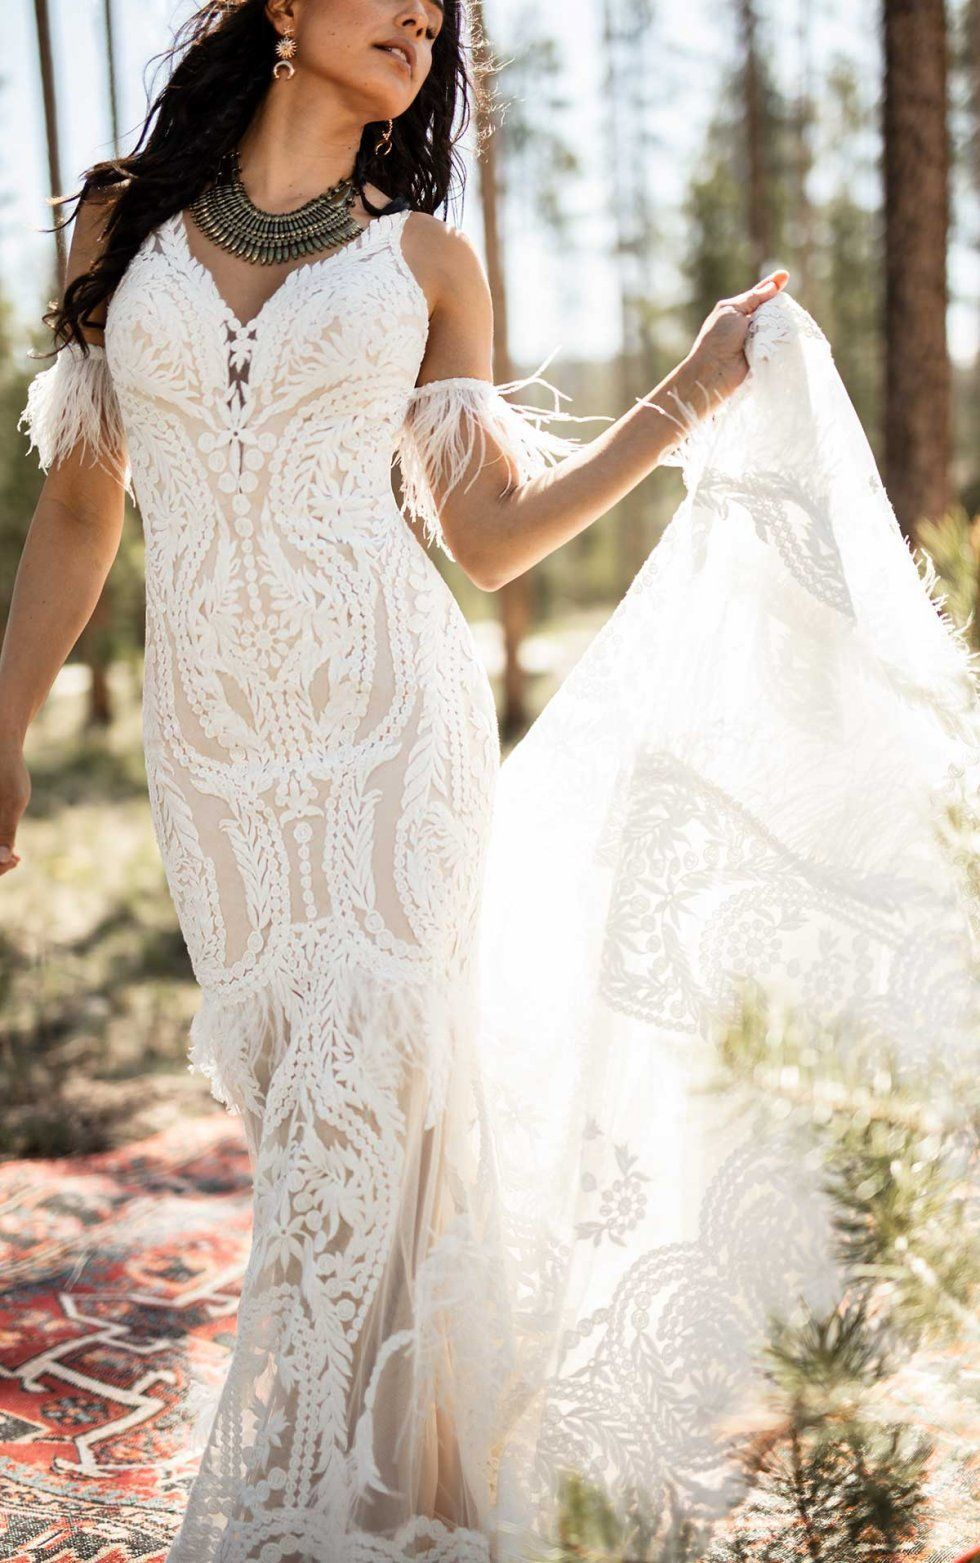 Boho Wedding Dress With Feather Details All Who Wander Wedding Dresses Wedding Dress With Feathers Bohemian Wedding Gown [ 1563 x 980 Pixel ]